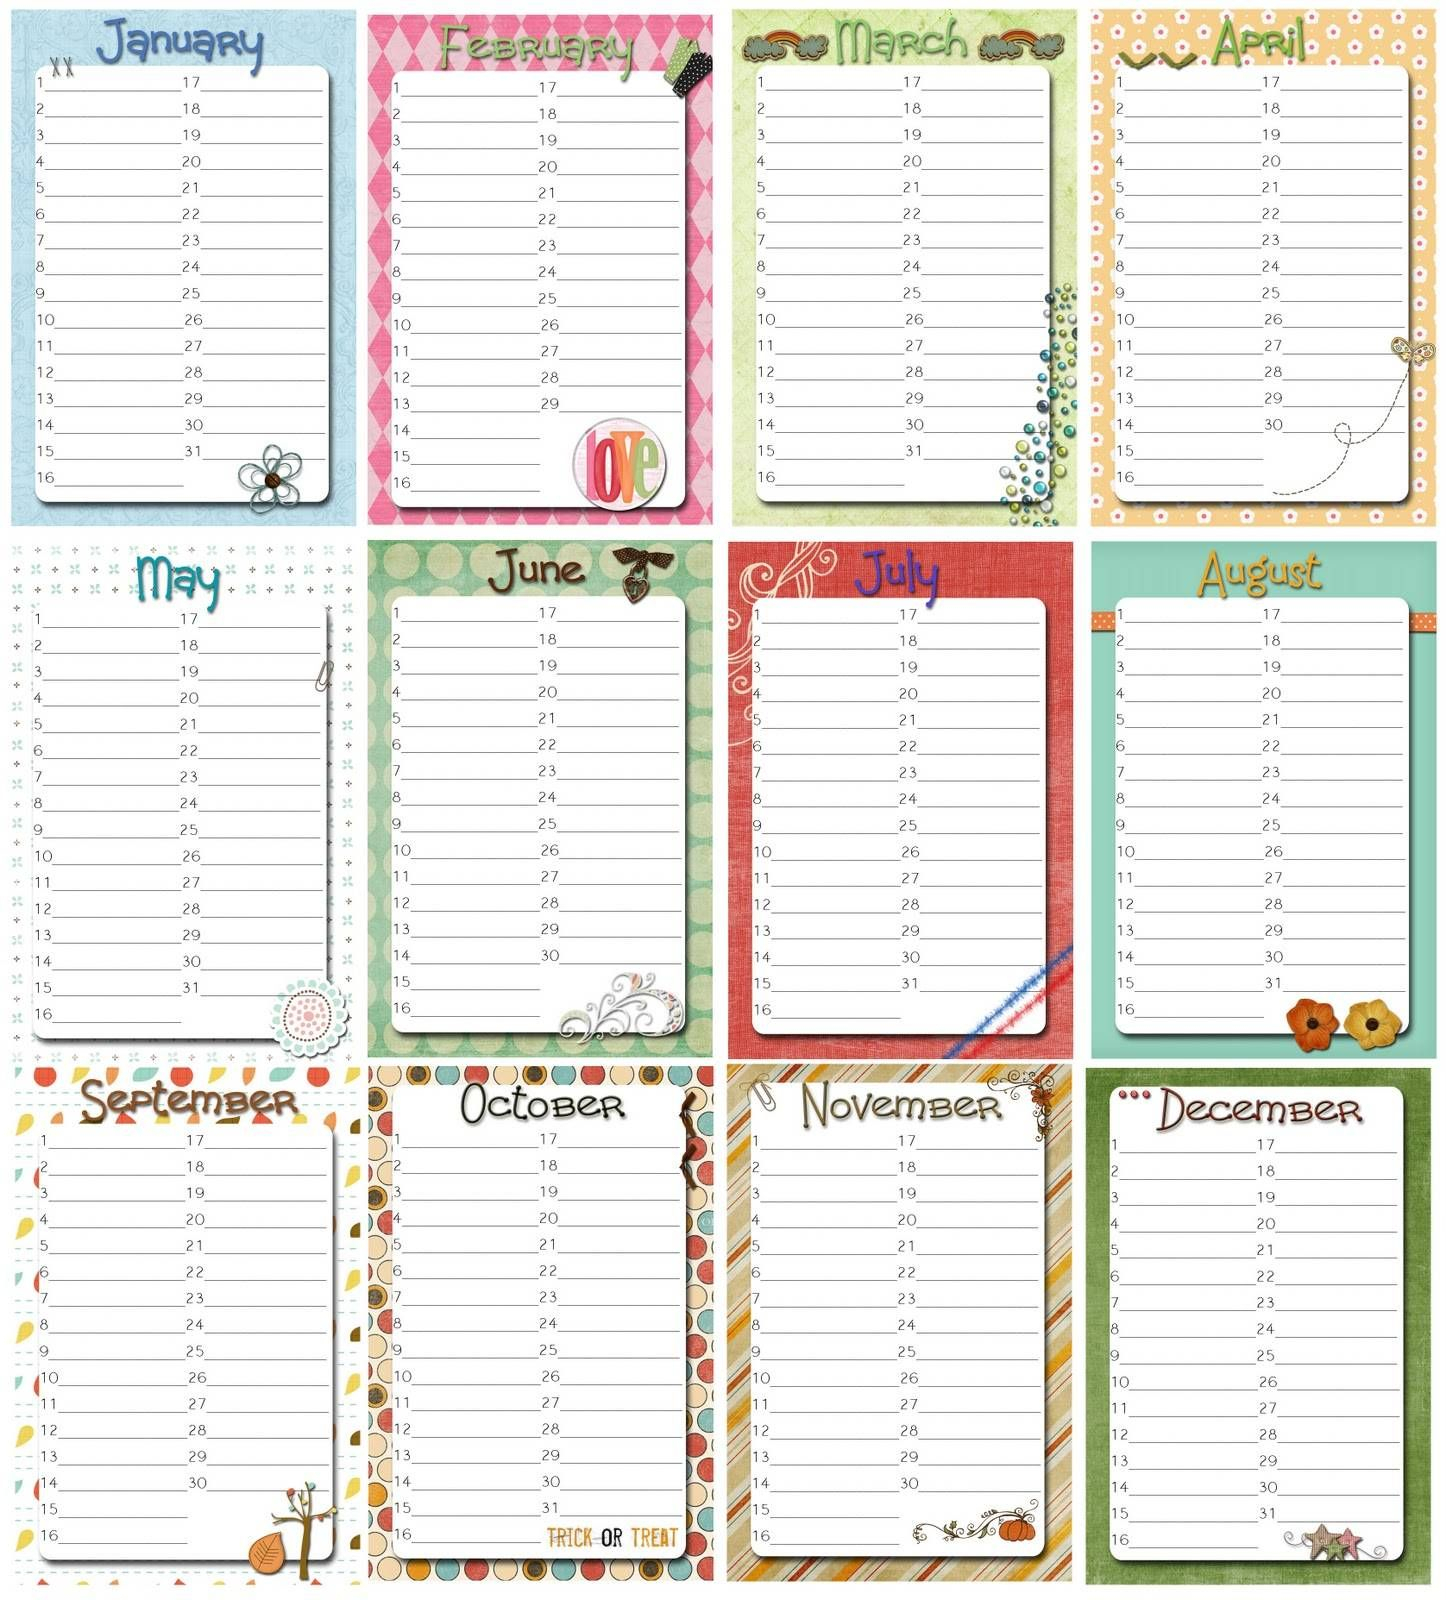 Free Perpetual Calendar Template | Posts Related To